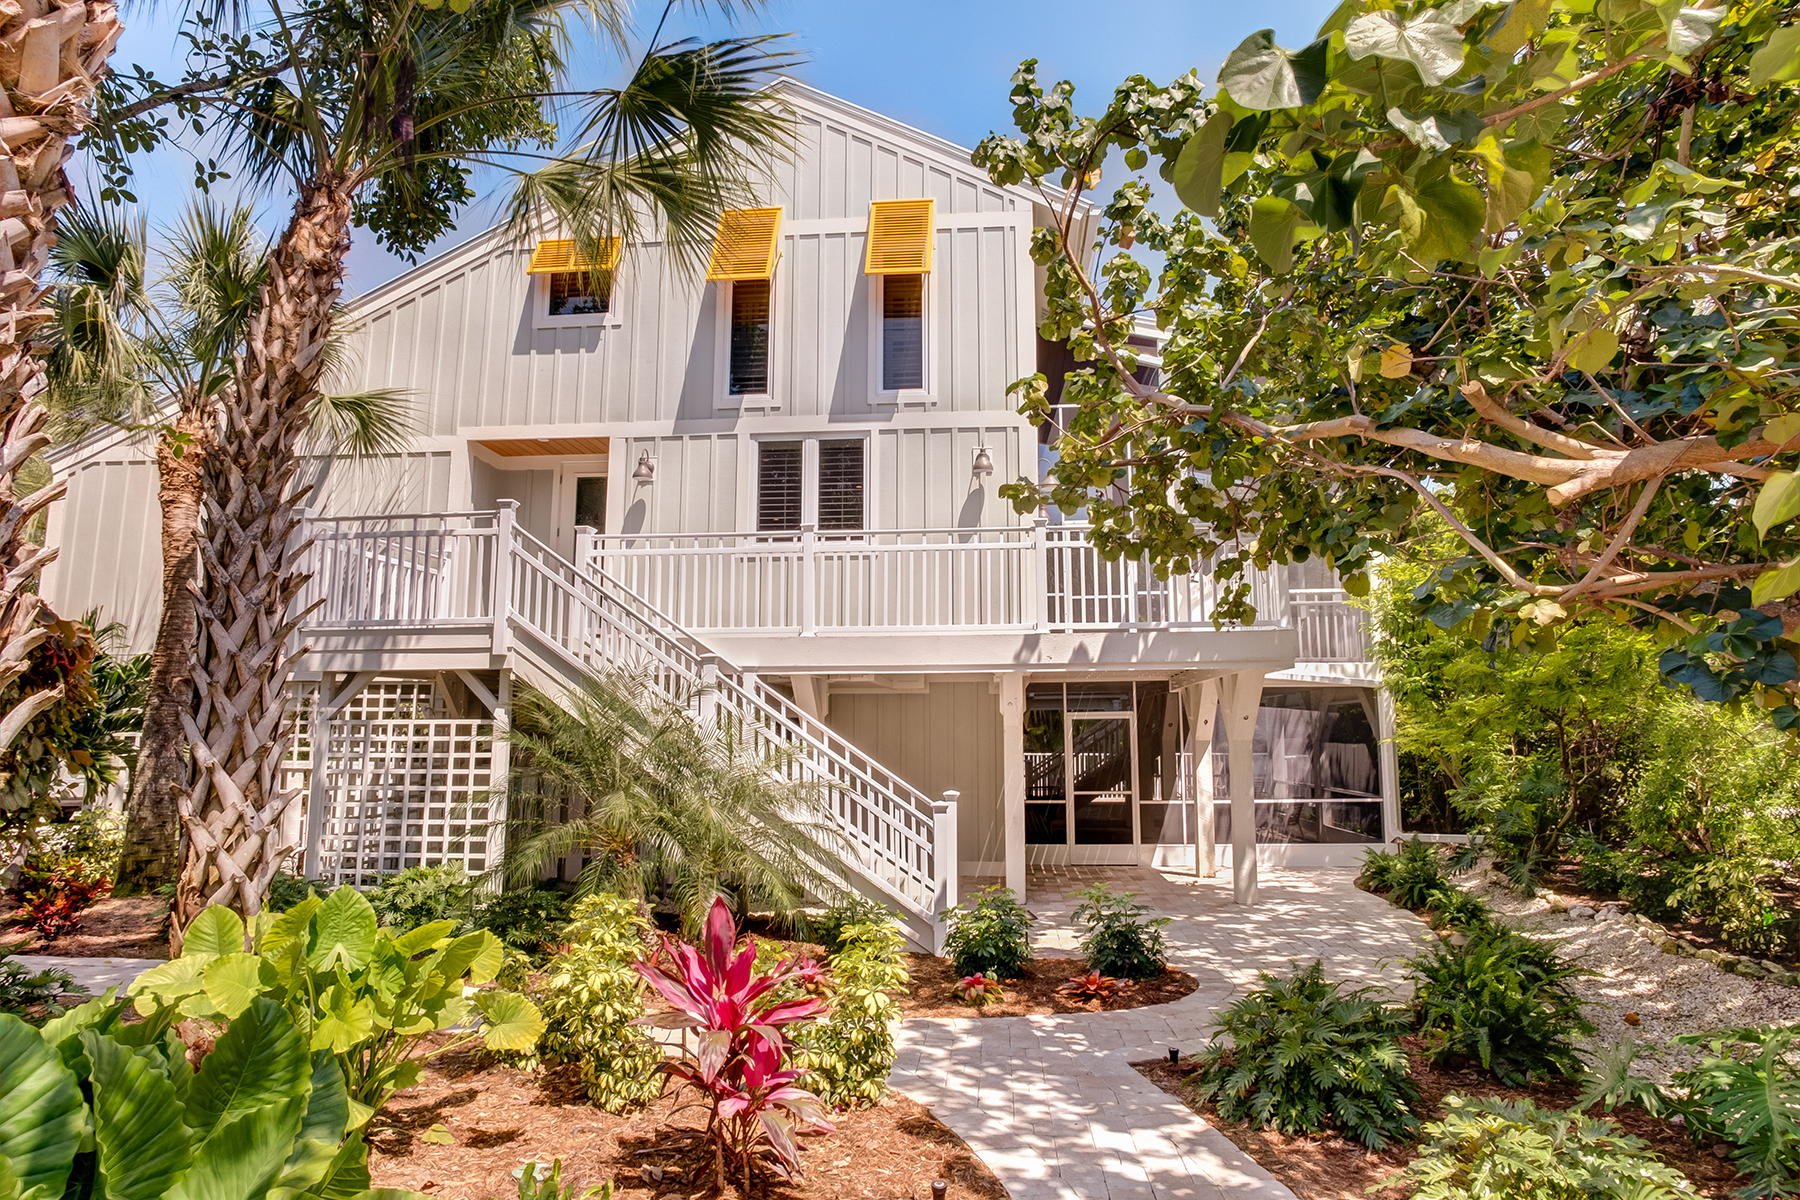 Single Family Home for Sale at Captiva 11411 Old Lodge Ln Captiva, Florida, 33924 United States